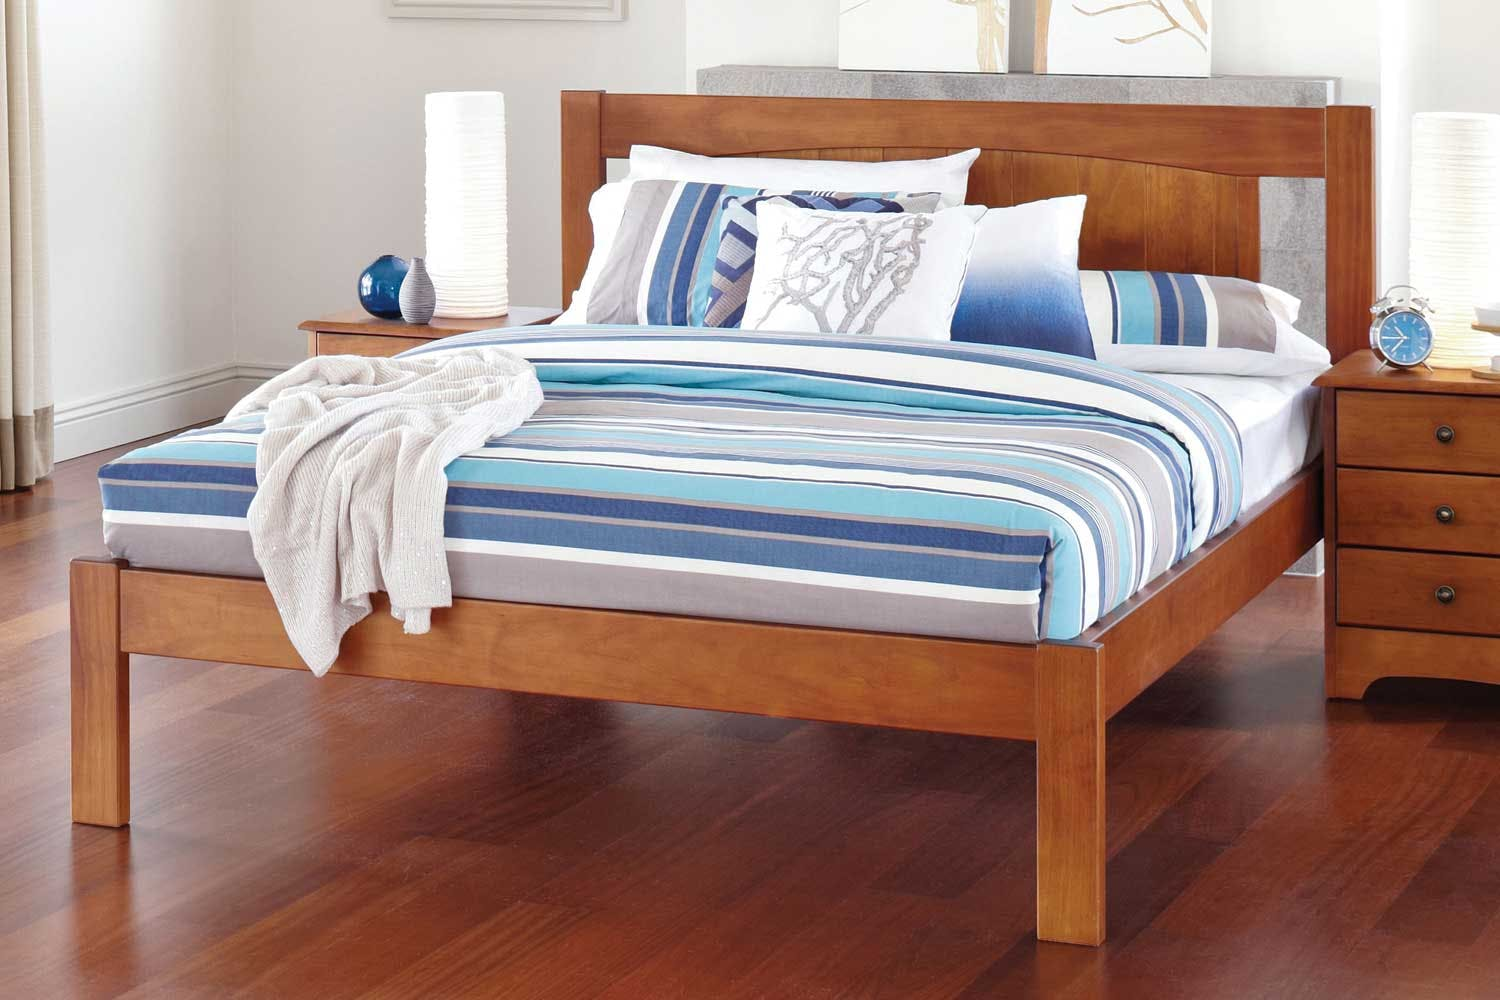 Image of Calais Queen Bed Frame by Coastwood Furniture